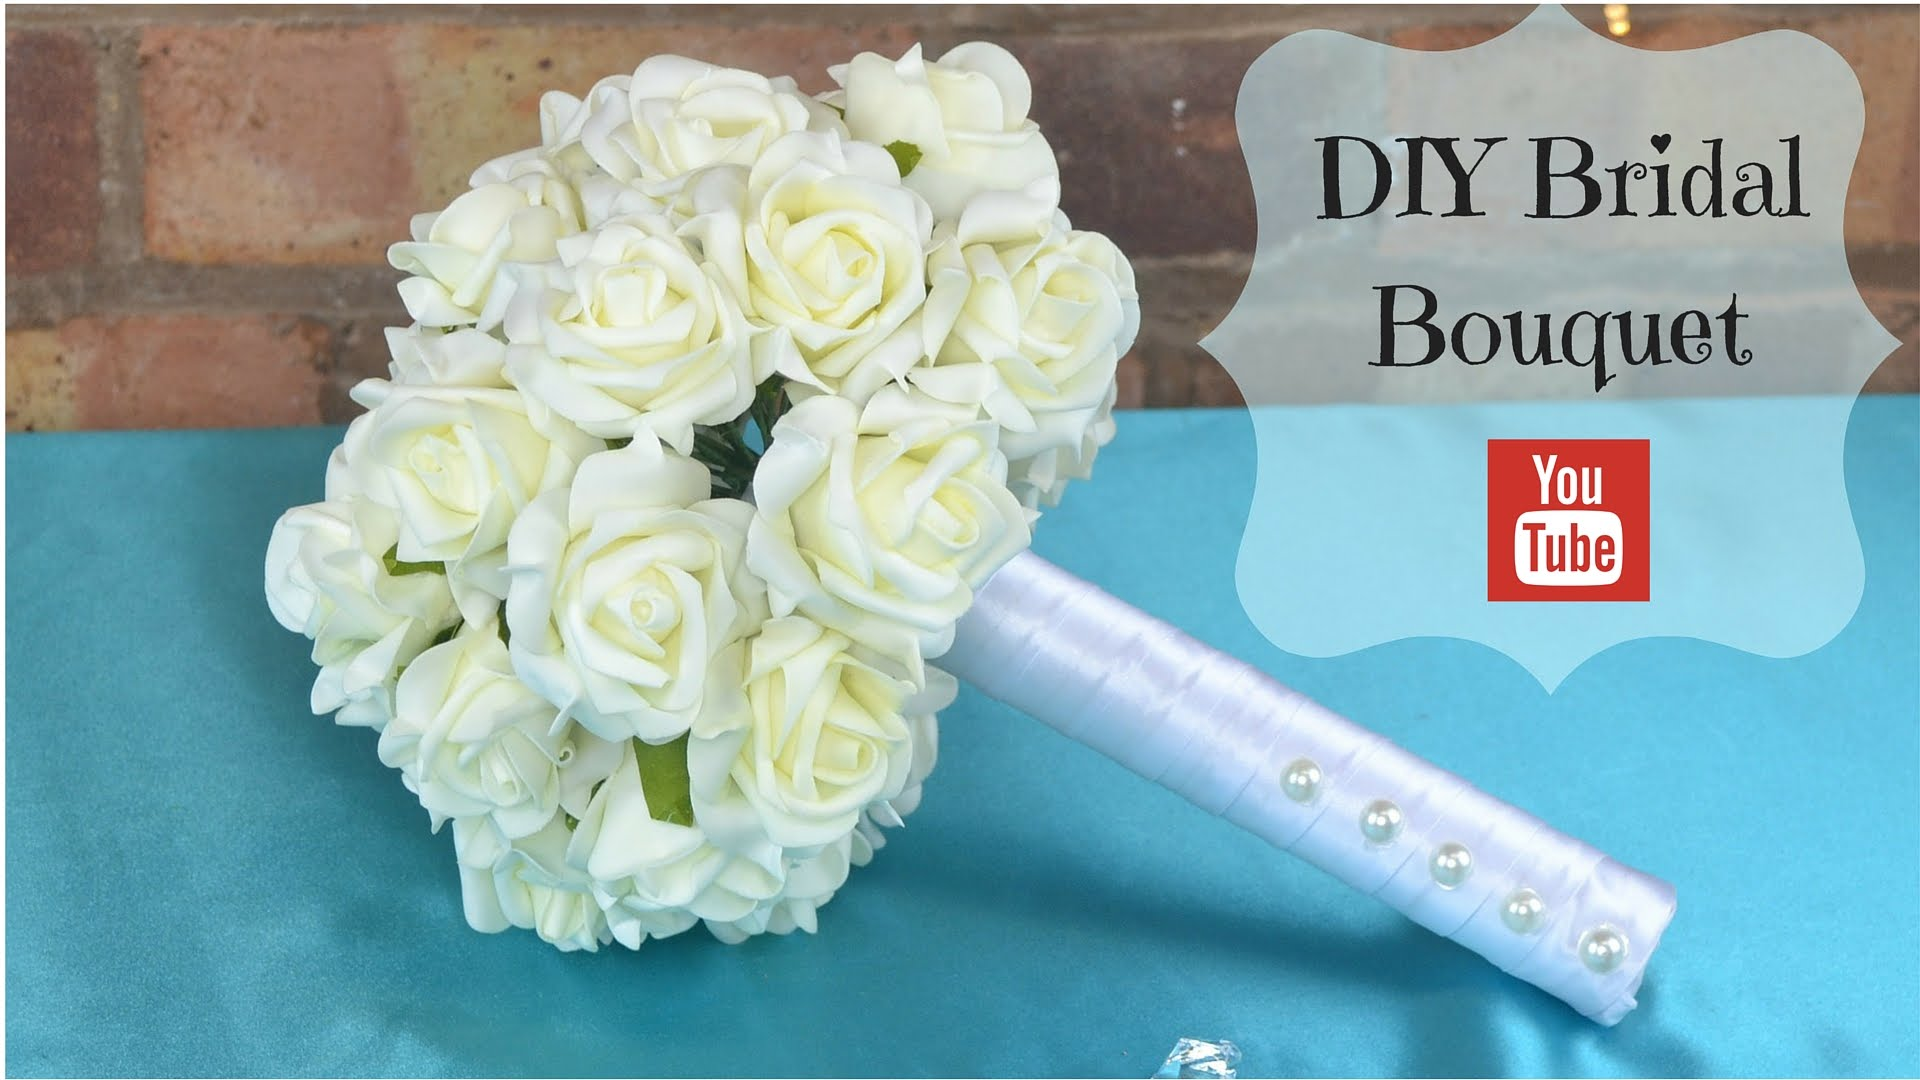 Diy bridal bouquet how to create your own bridal wedding flowers diy bridal bouquet how to create your own bridal wedding flowers bouquet using foam flowers fake flower arrangements fake flower arrangements izmirmasajfo